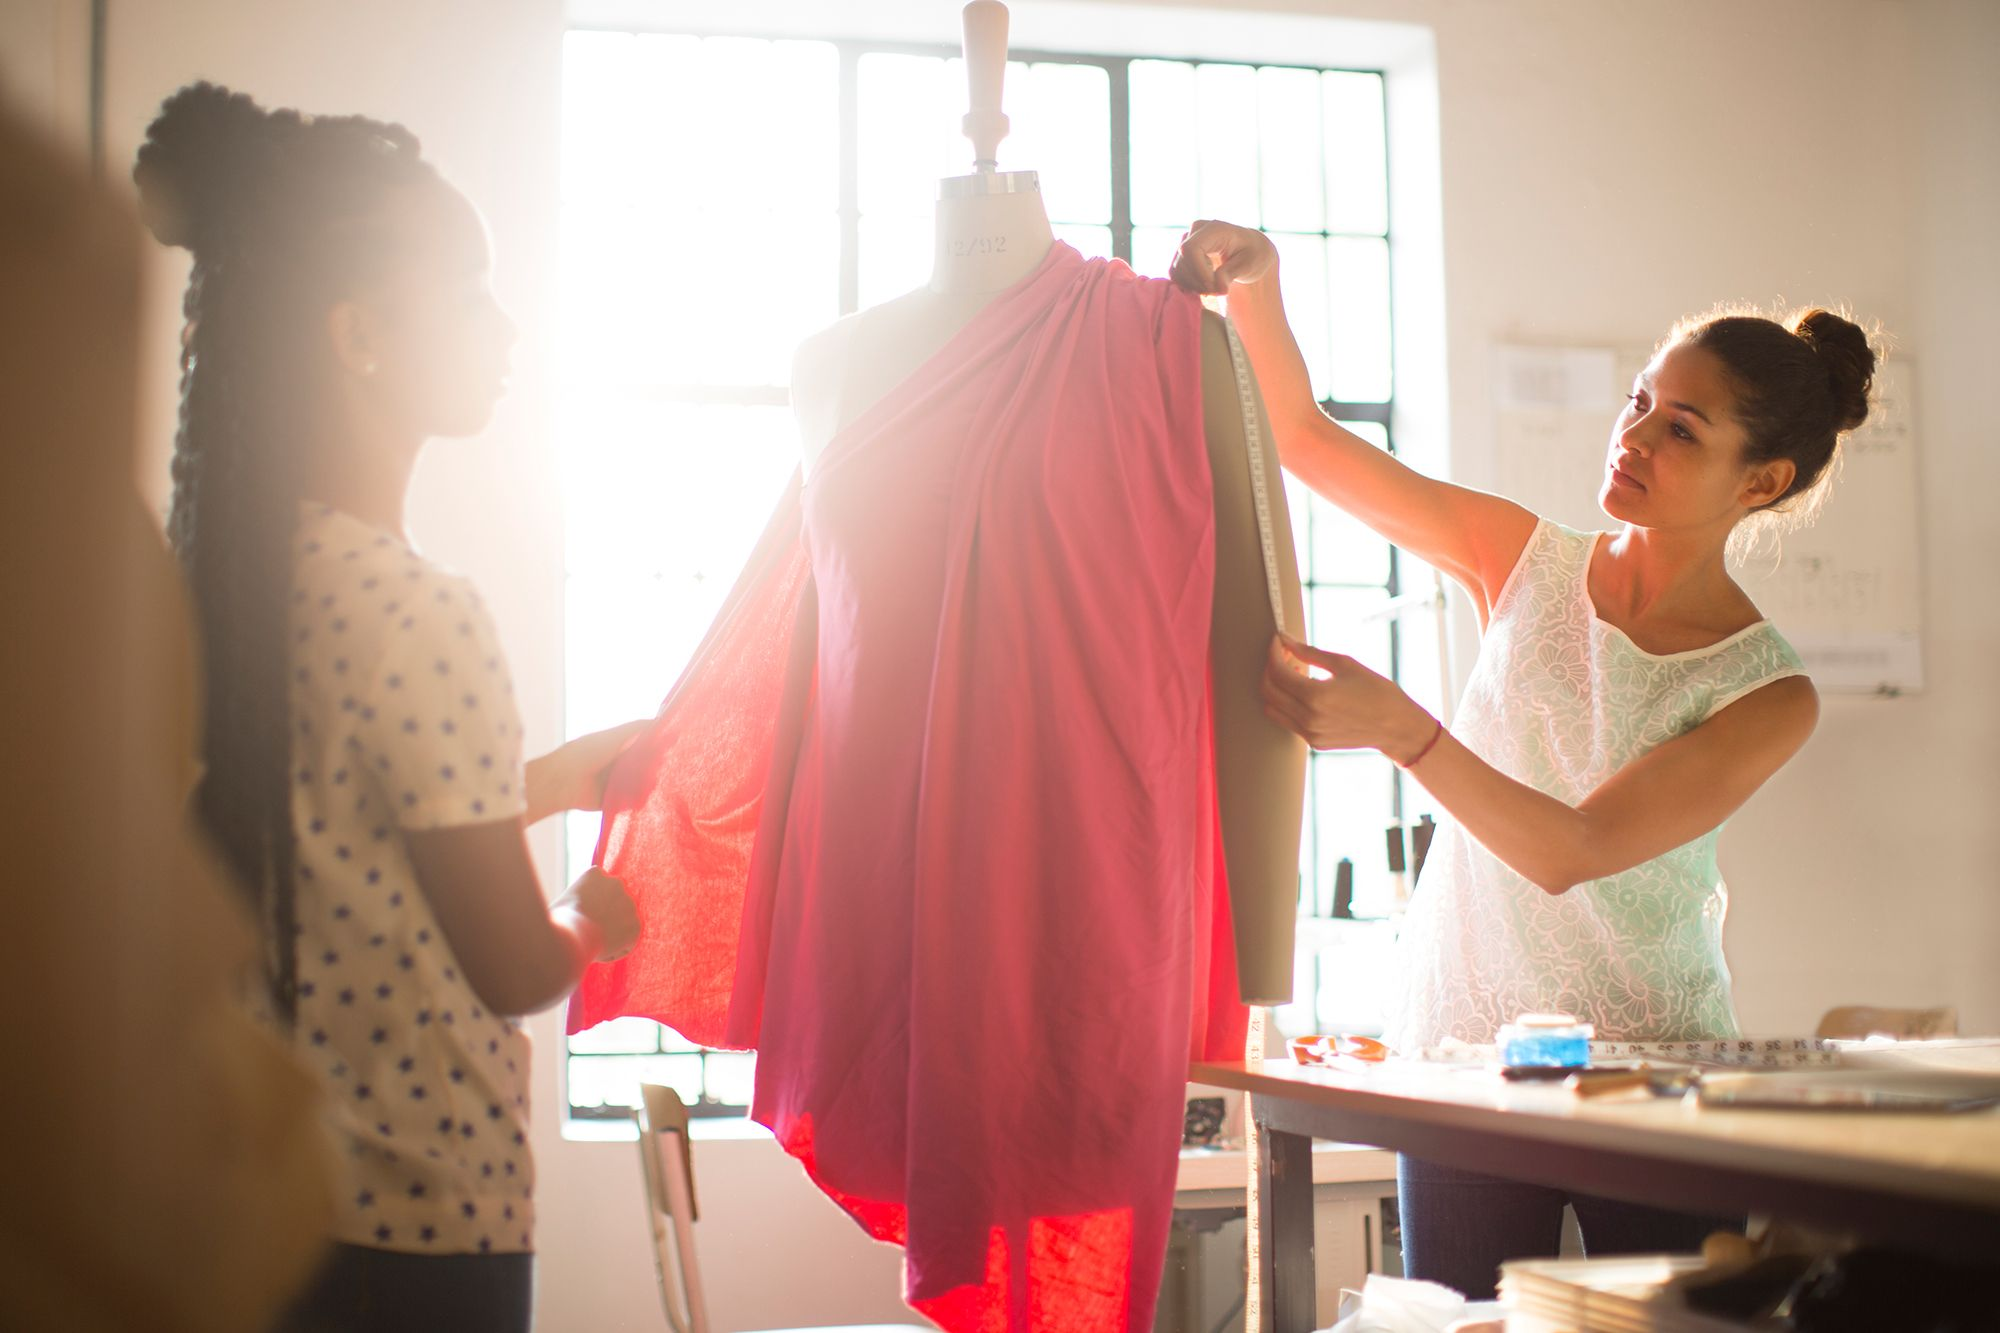 Fashion Jobs Uk The Salaries For The Most Popular Jobs In The Fashion Industry